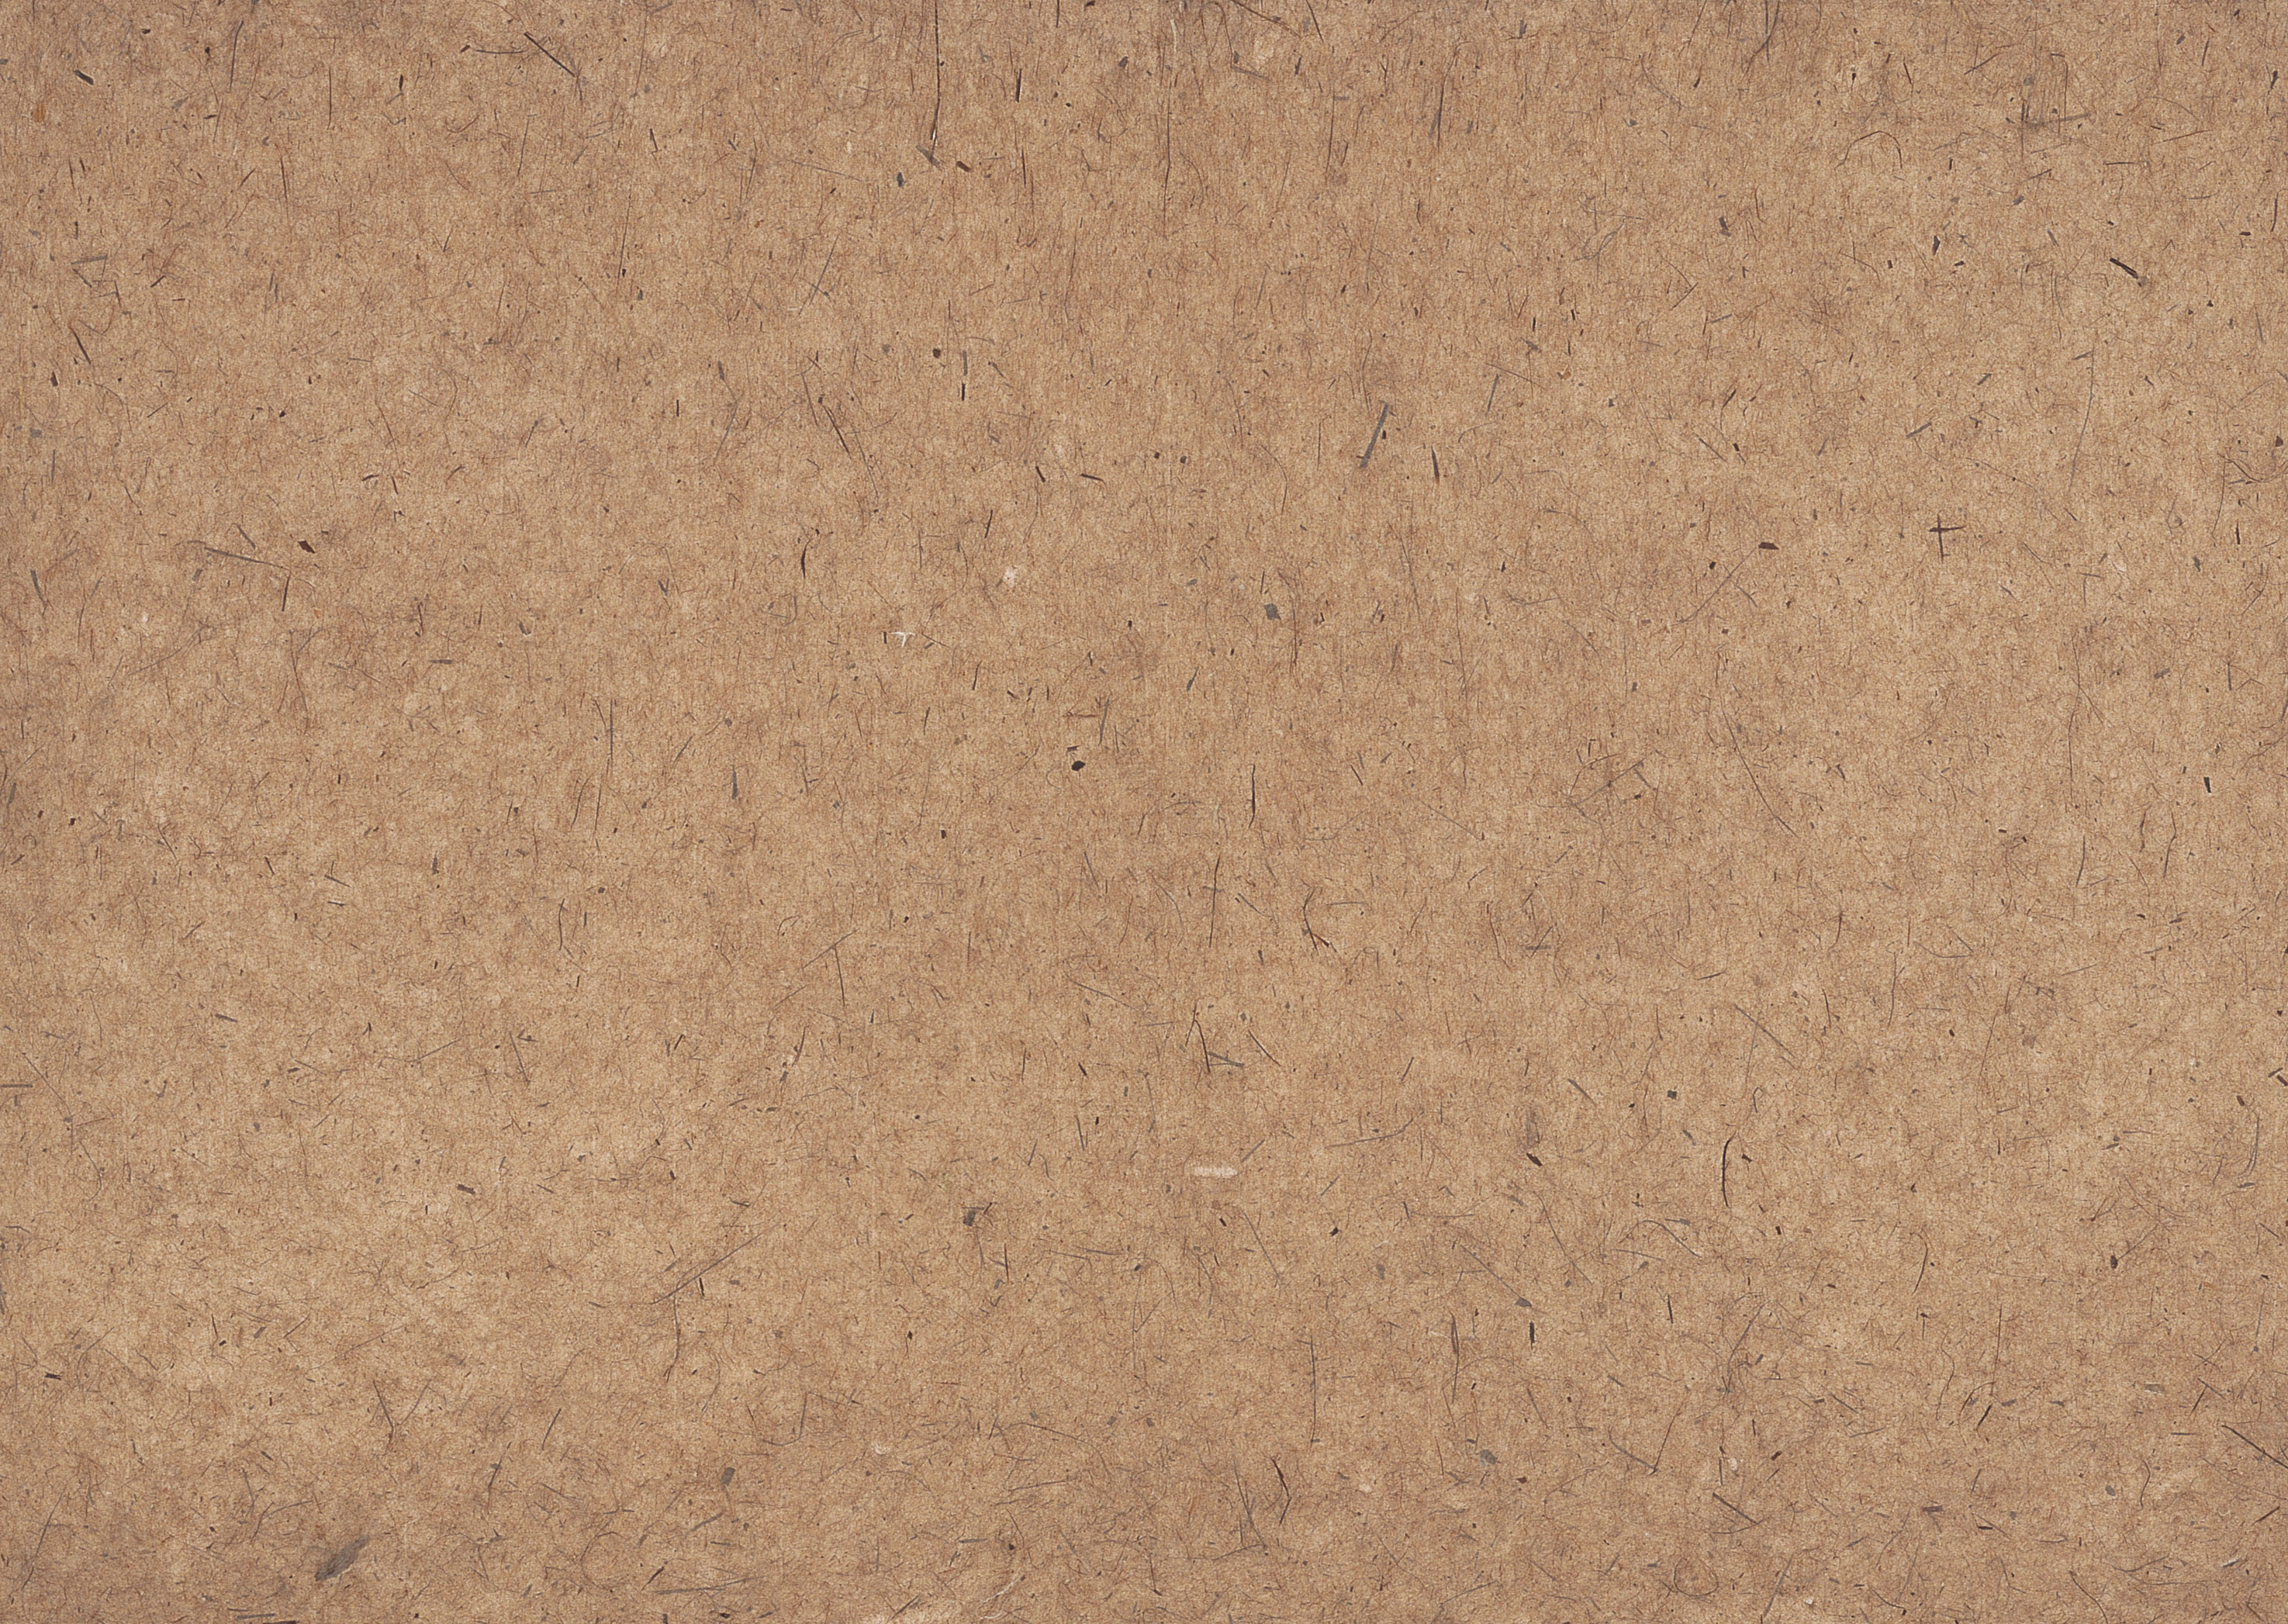 texture background, free image